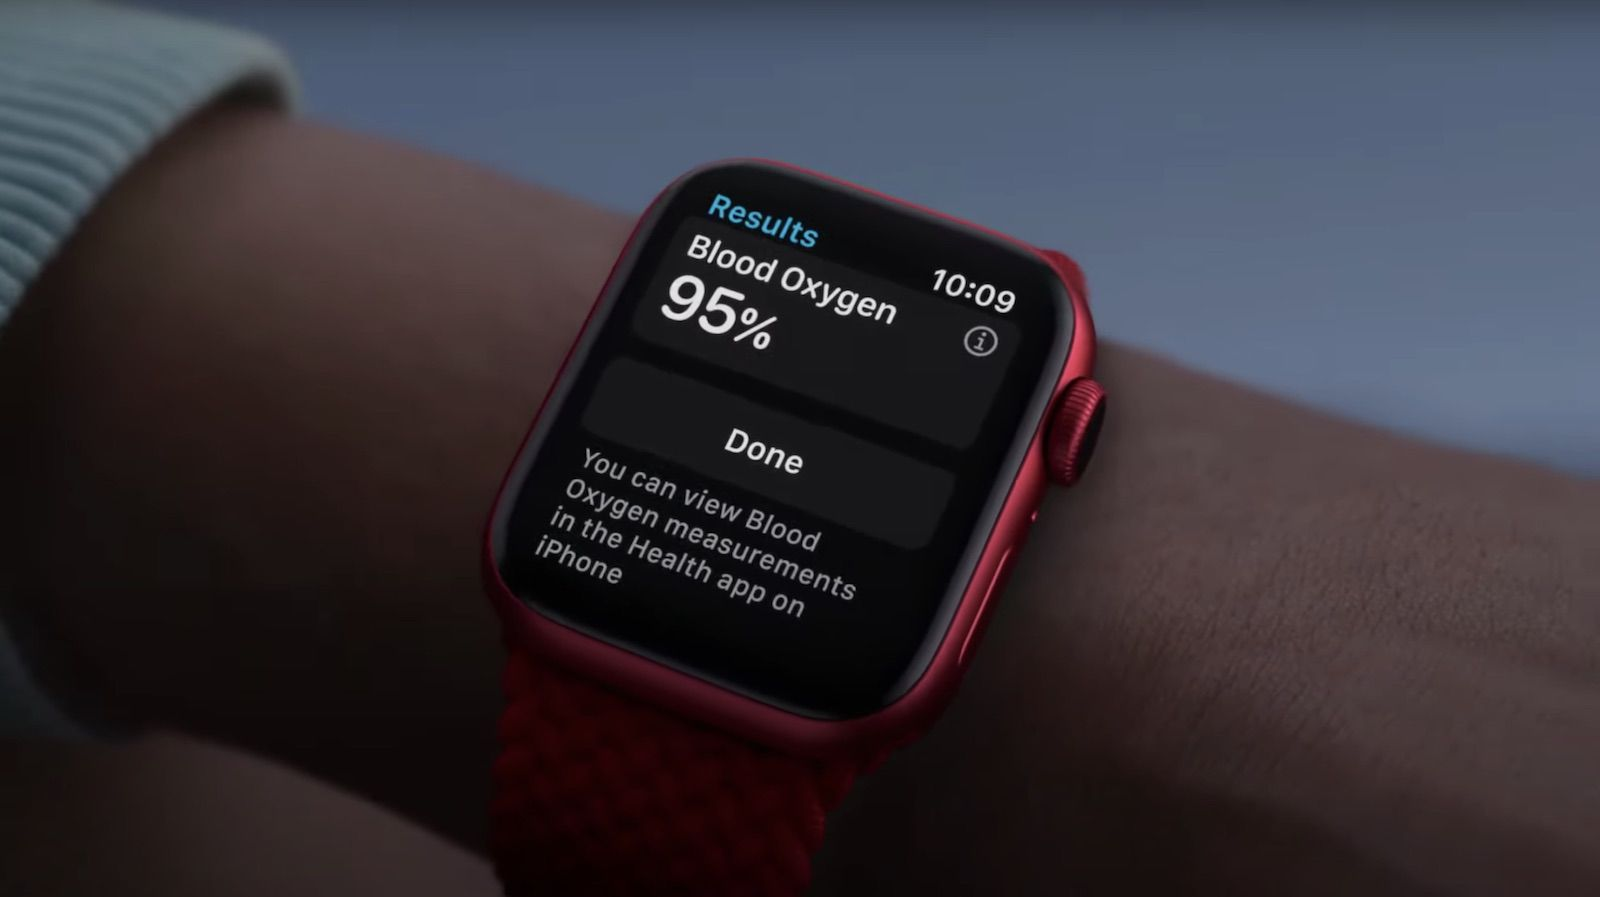 Apple Watch Series 6 Blood Oxygen Monitoring Available in Most Countries Worldwide – MacRumors